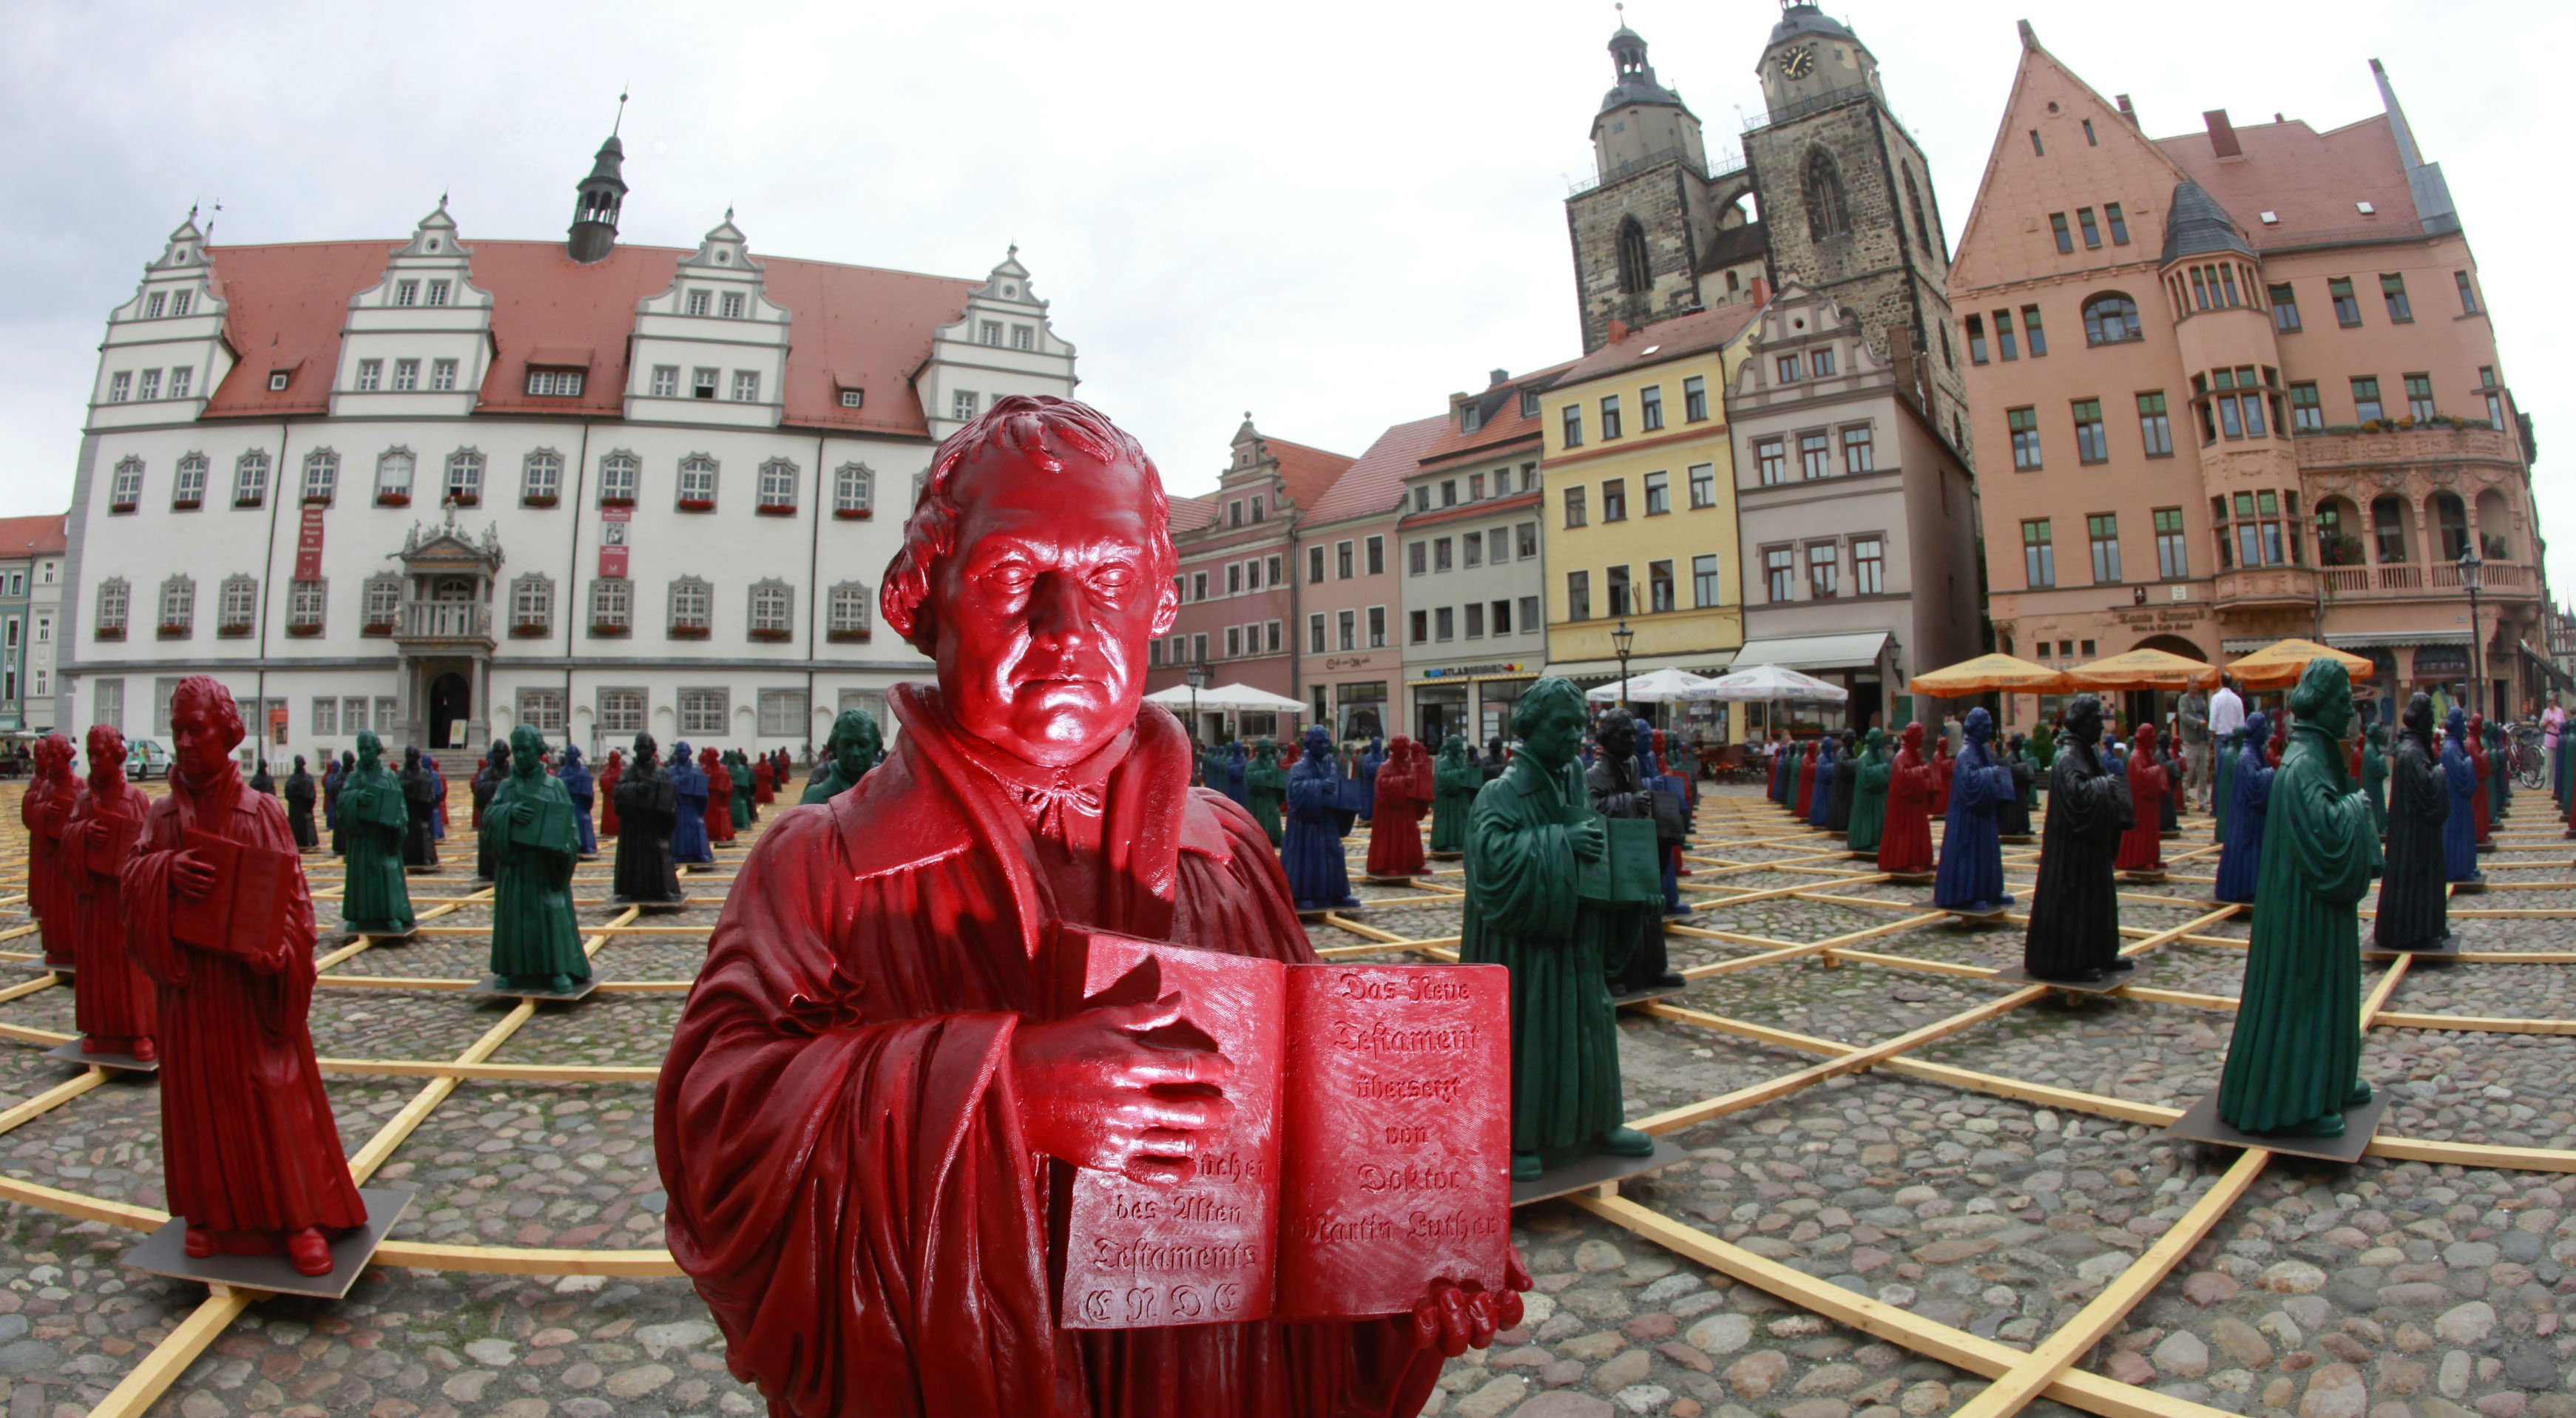 An art exhibit features plastic statues of Martin Luther.